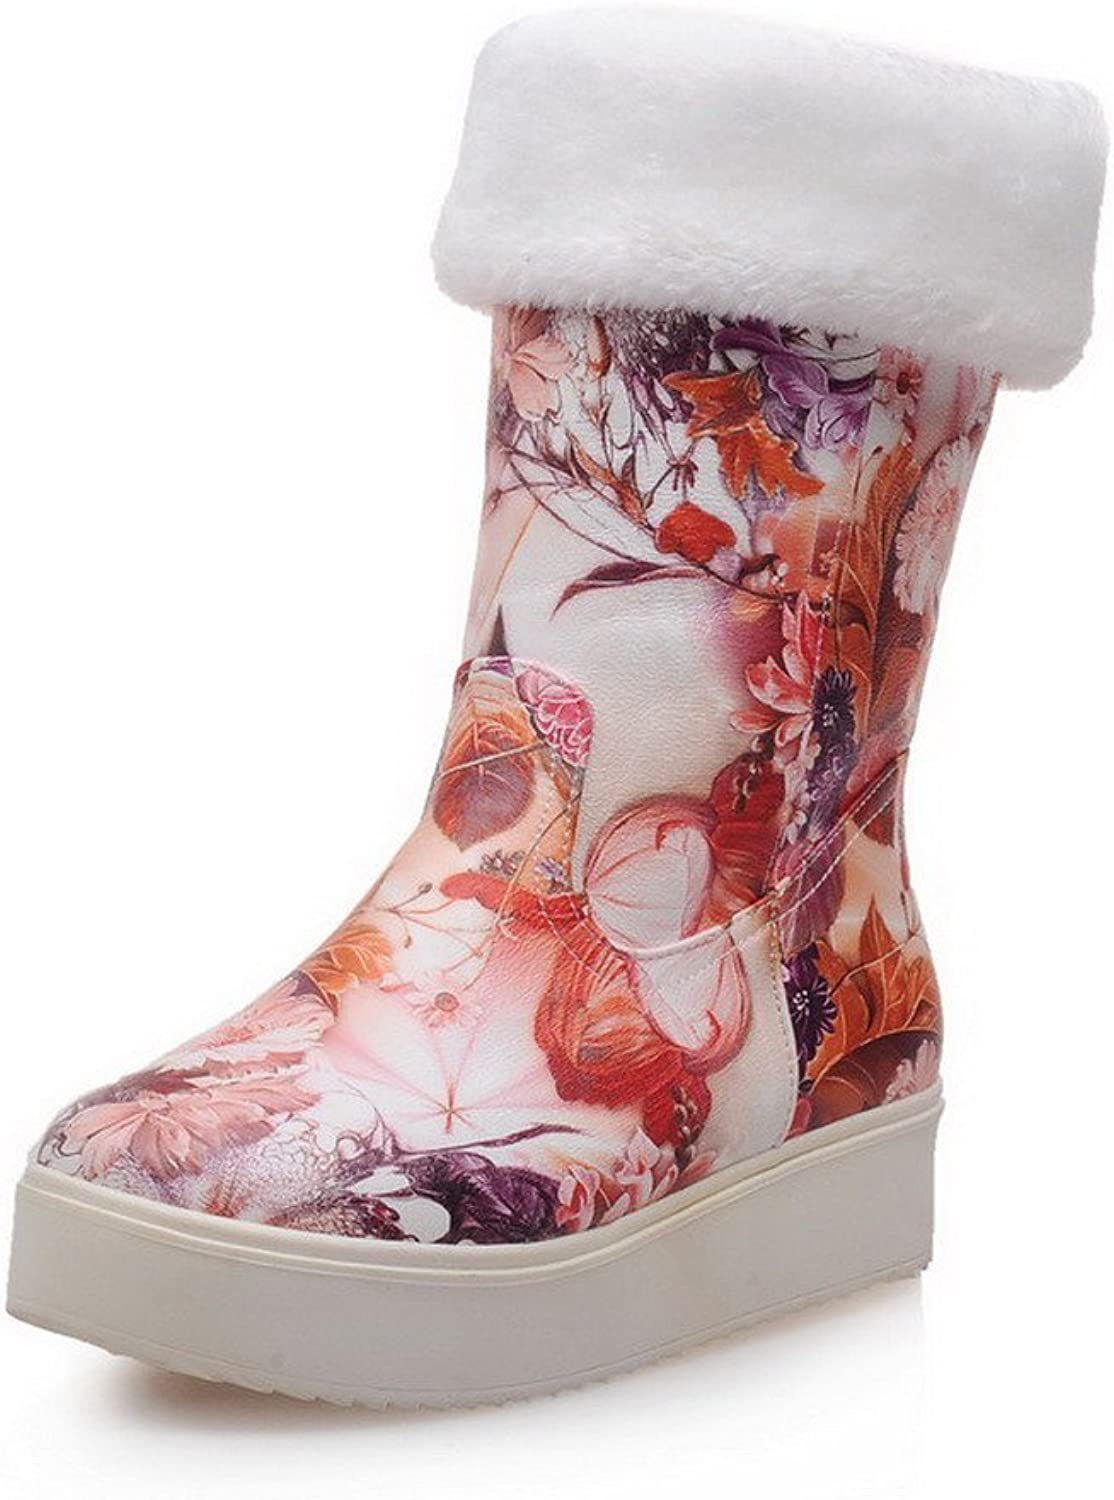 WeenFashion Women's Pull-On Low-Heels PU Assorted color Mid-Top Boots